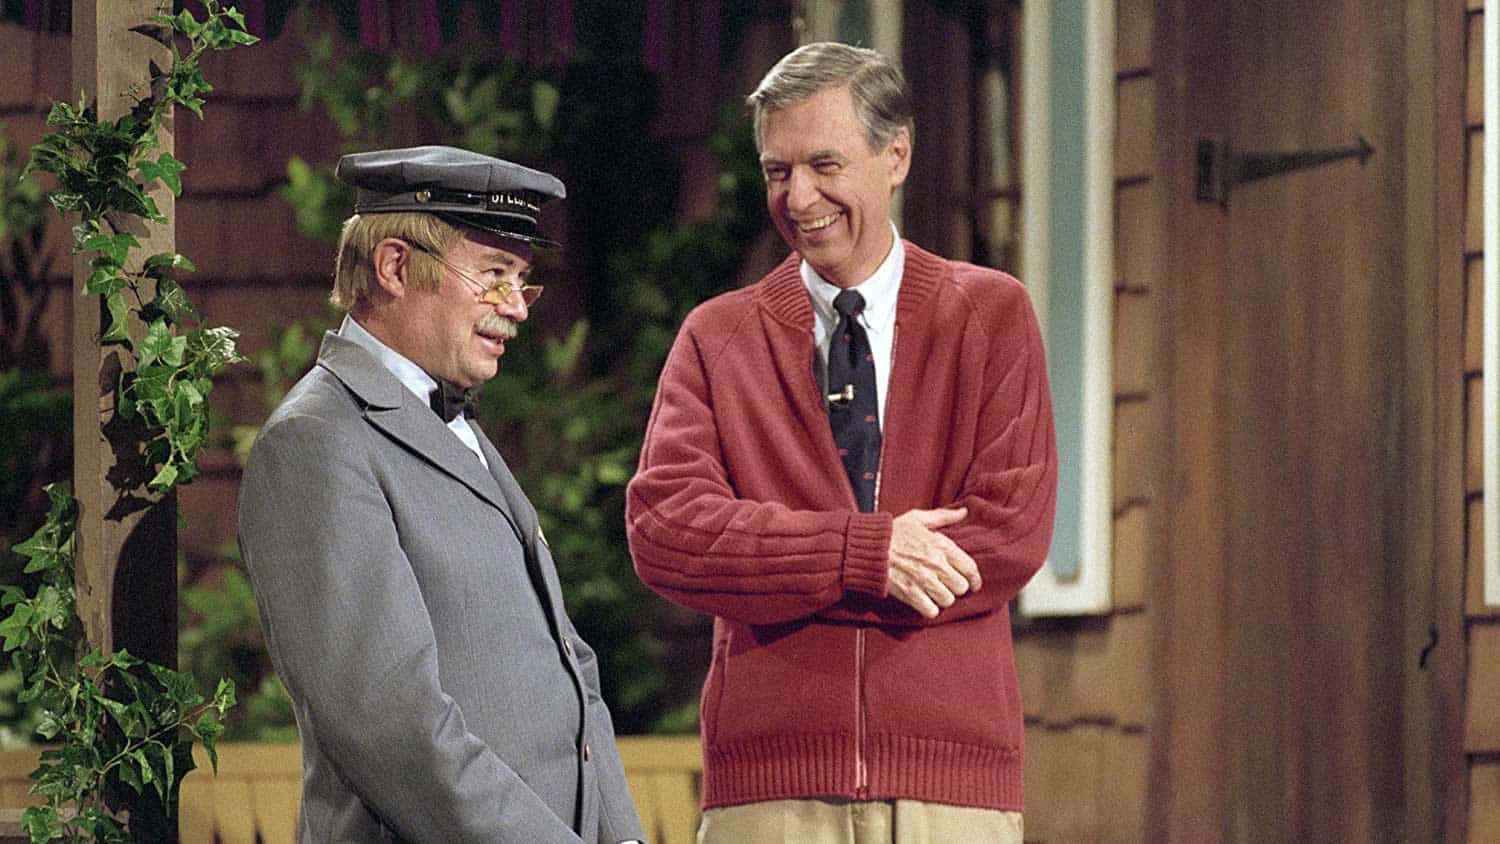 Won't You Be My Neighbor? Review – The Life And Times Of Mr. Rogers - OC Movie Reviews - Movie Reviews, Movie News, Documentary Reviews, Short Films, Short Film Reviews, Trailers, Movie Trailers, Interviews, film reviews, film news, hollywood, indie films, documentaries